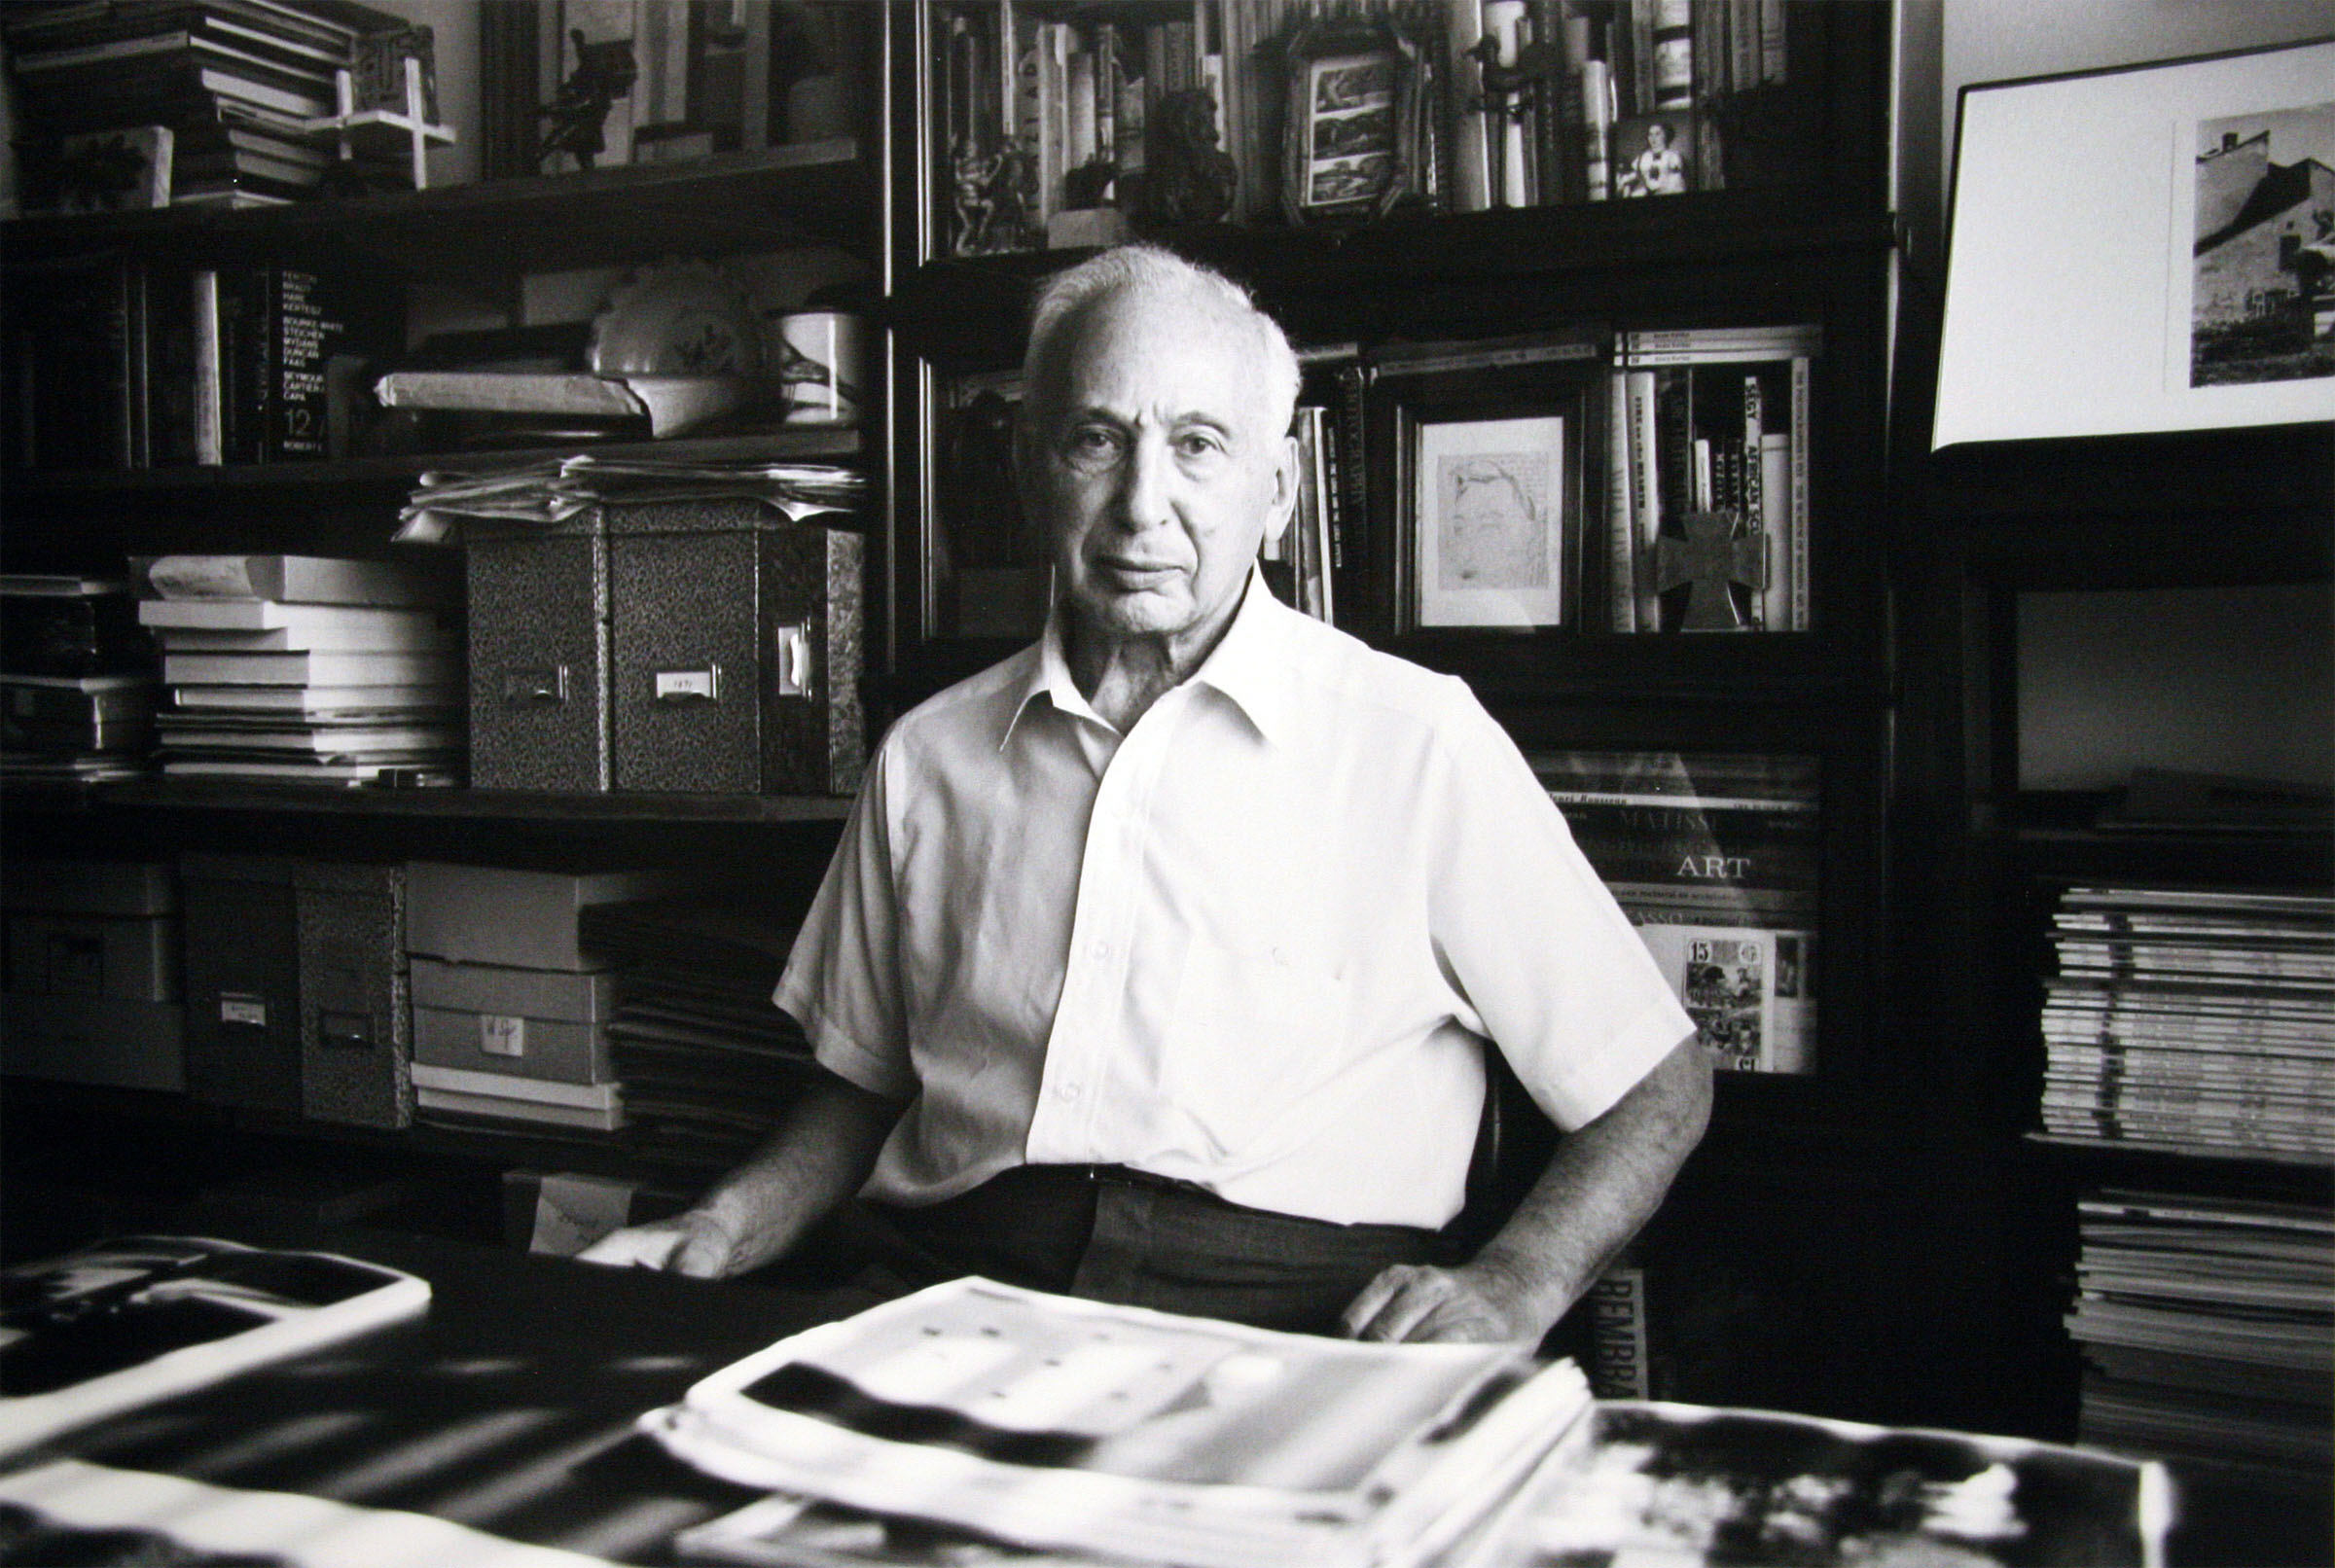 André Kertész circa 1980, by Bill Rauhauser, © Bill Rauhauser 2010